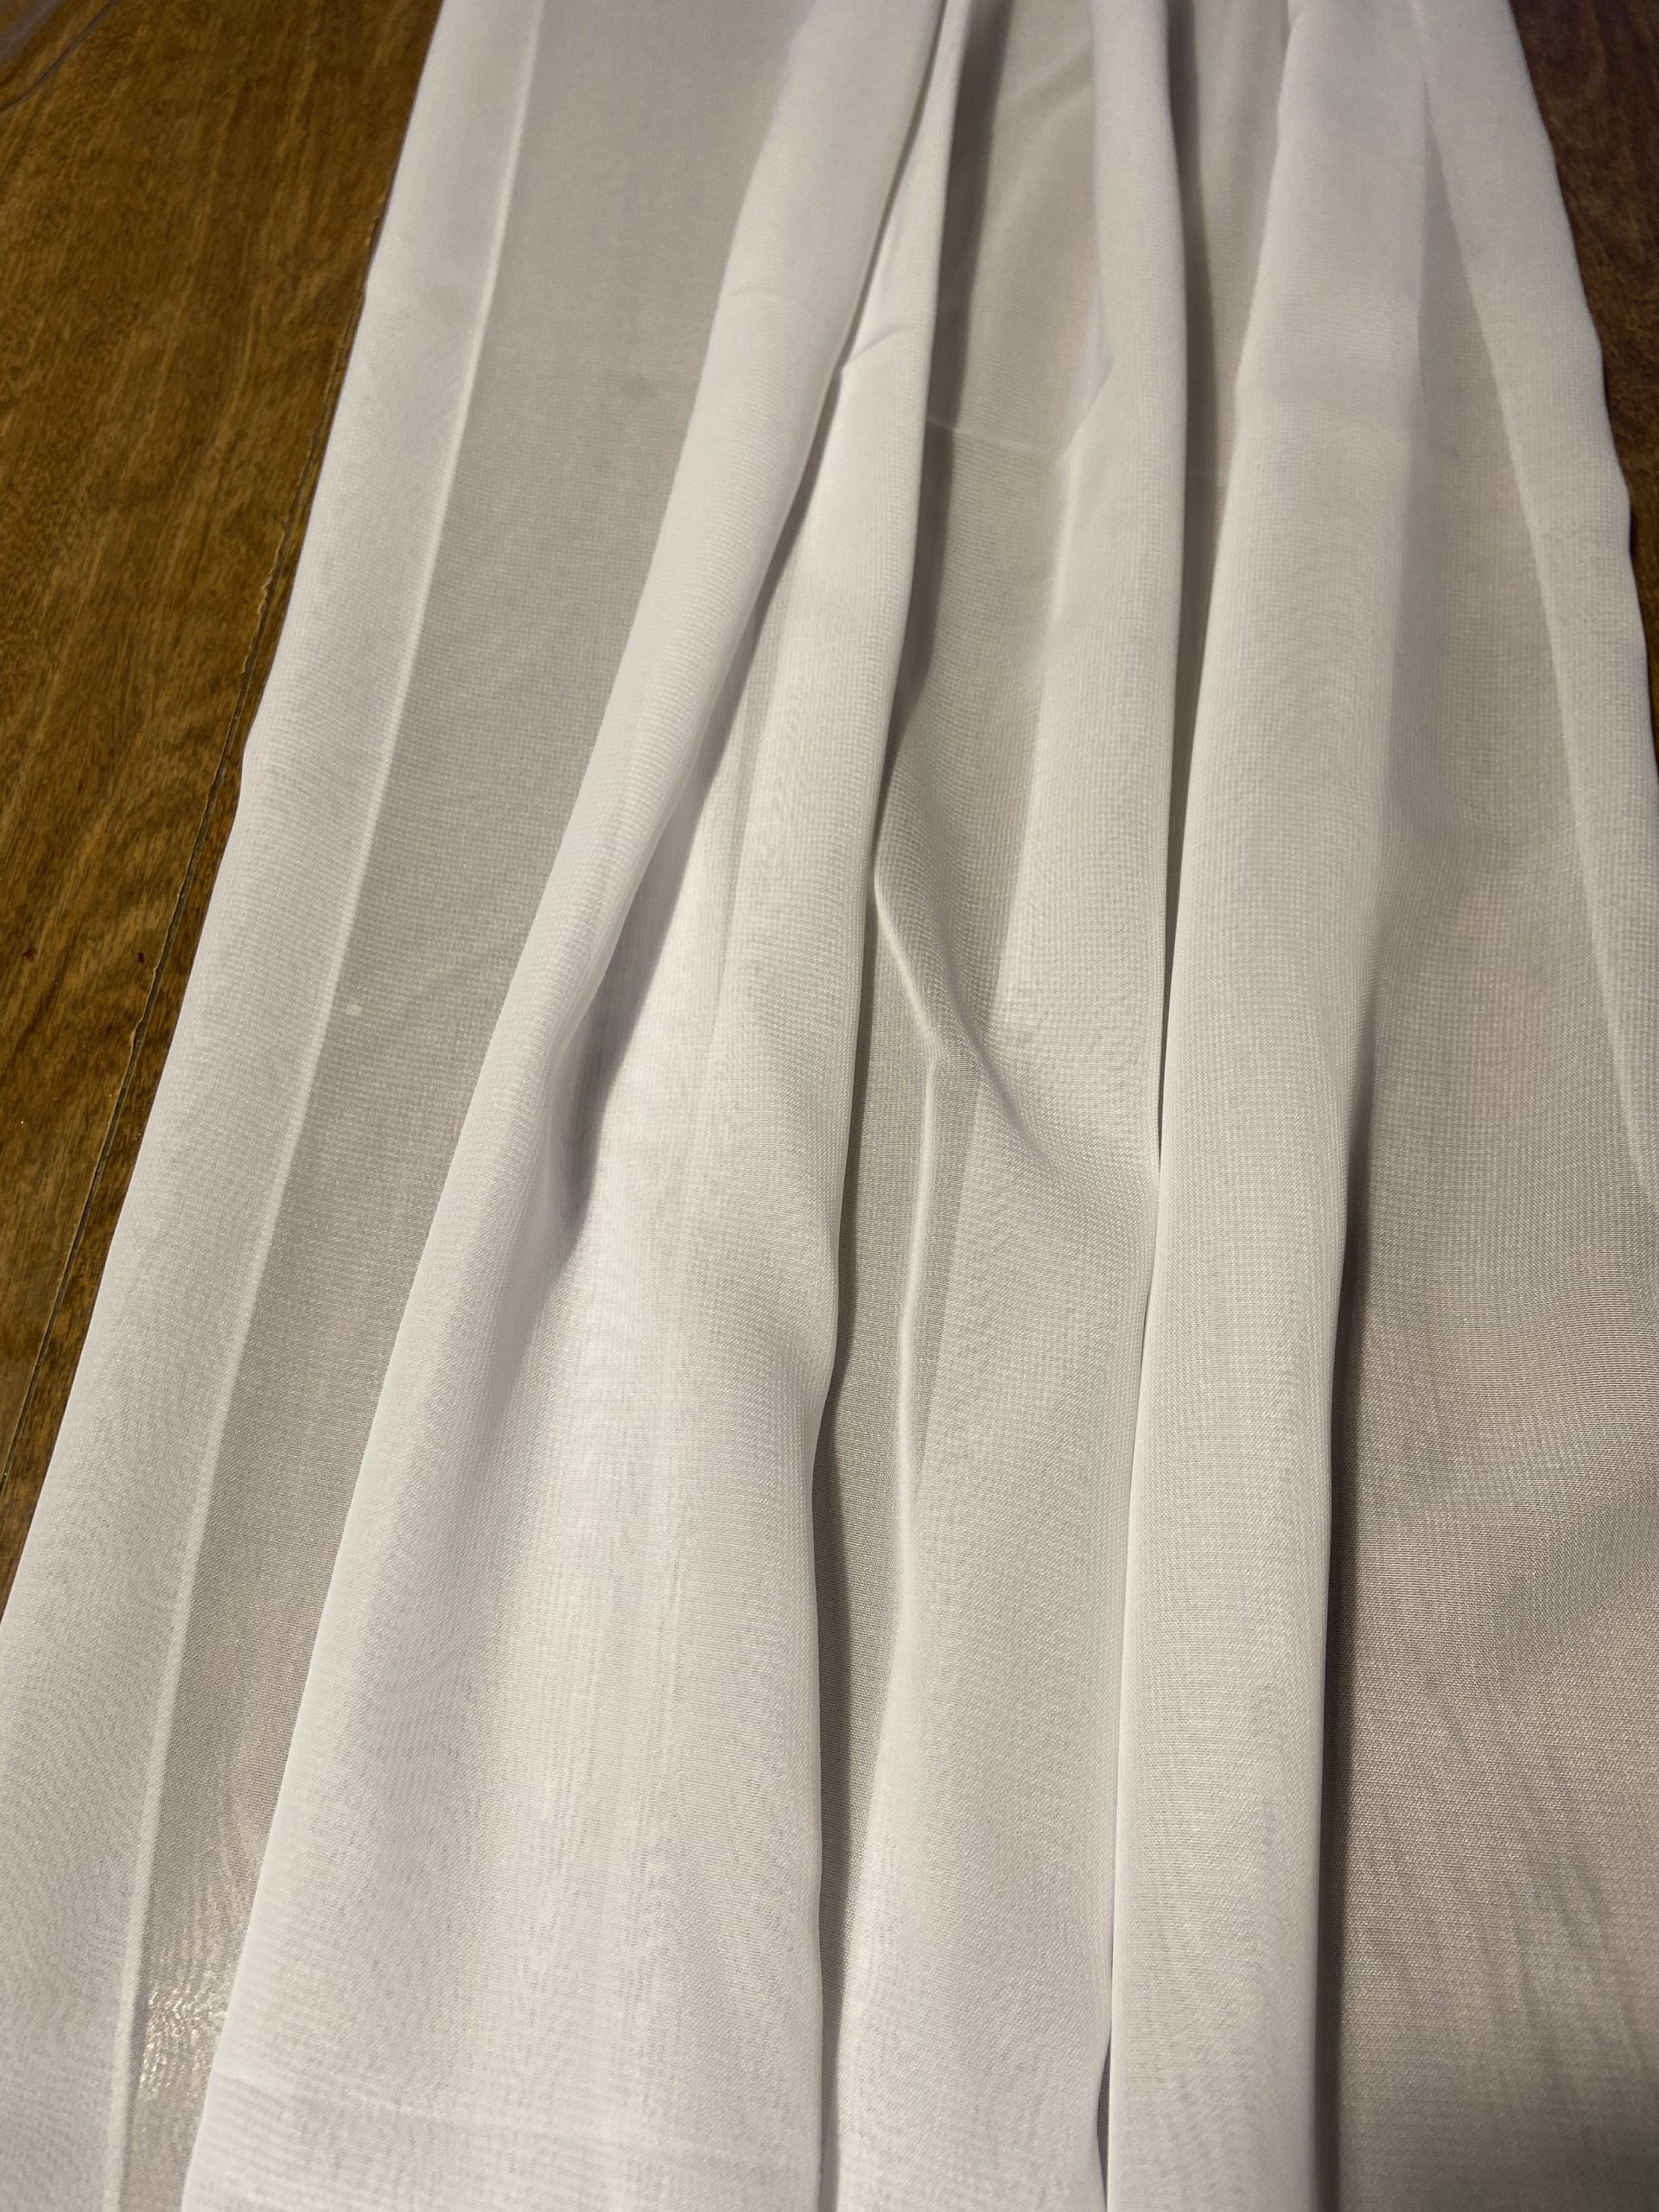 white chiffon table runners